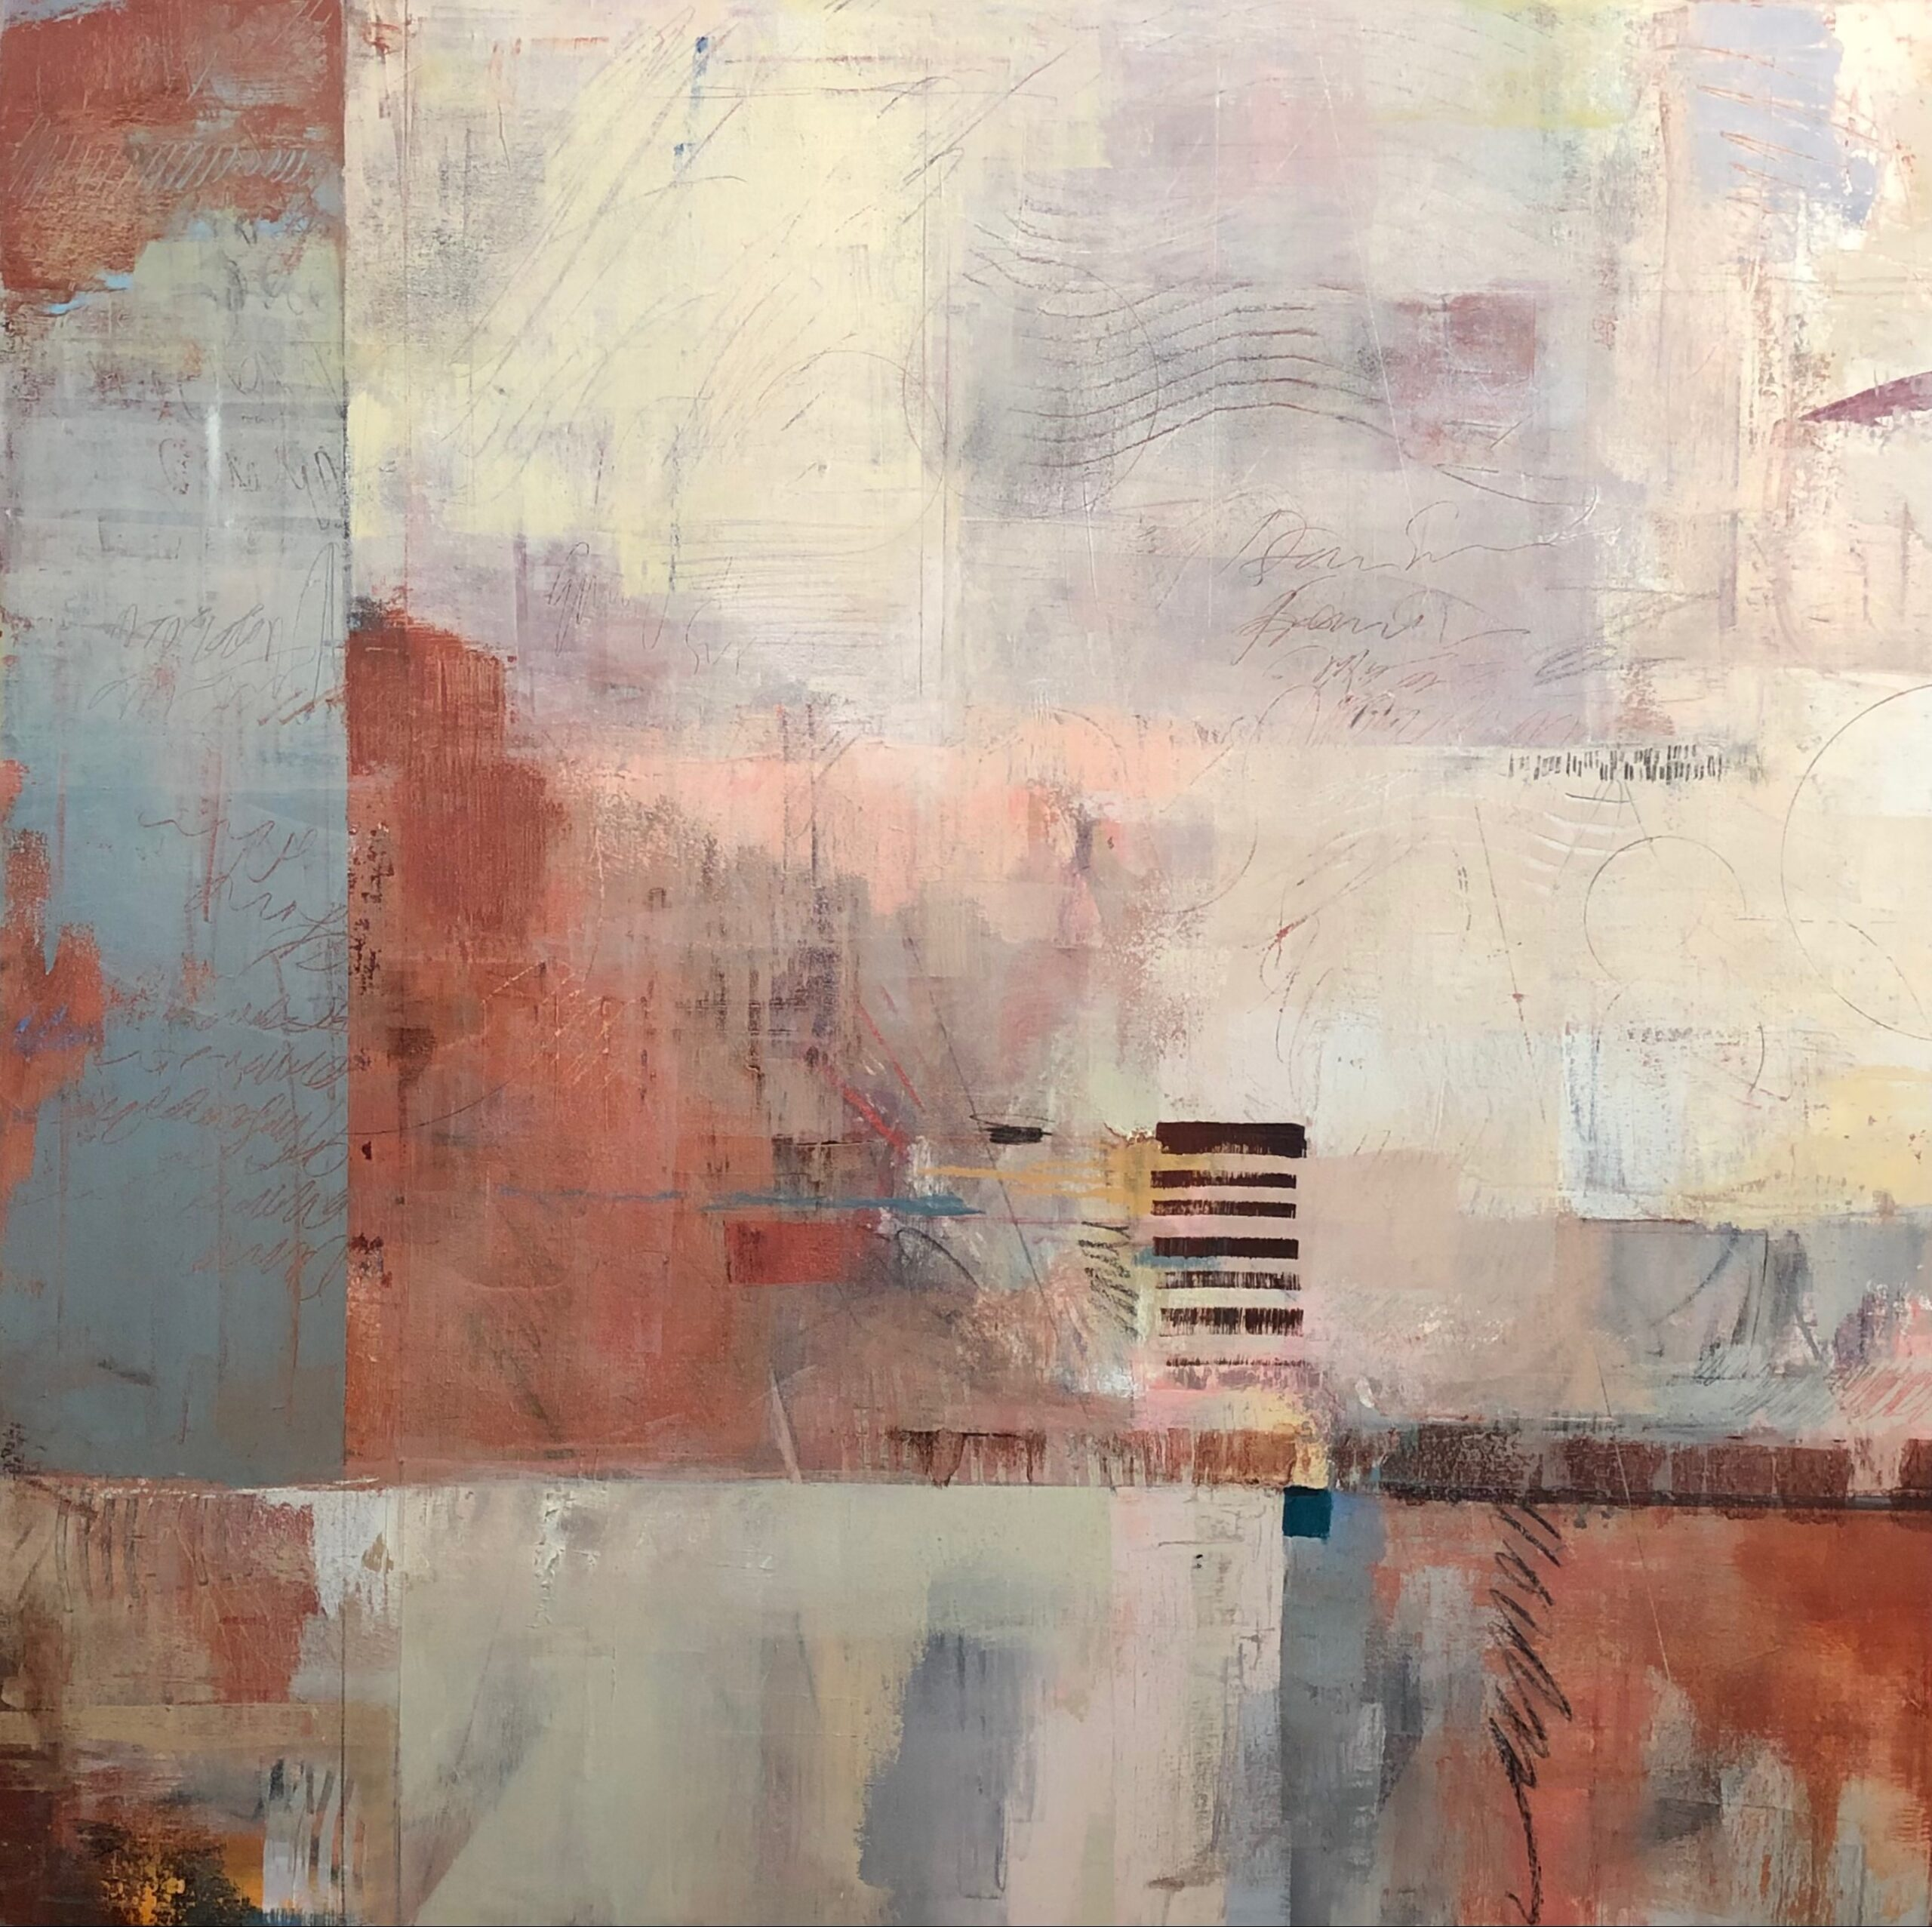 sienna, blue, white blocks of color abstract painting